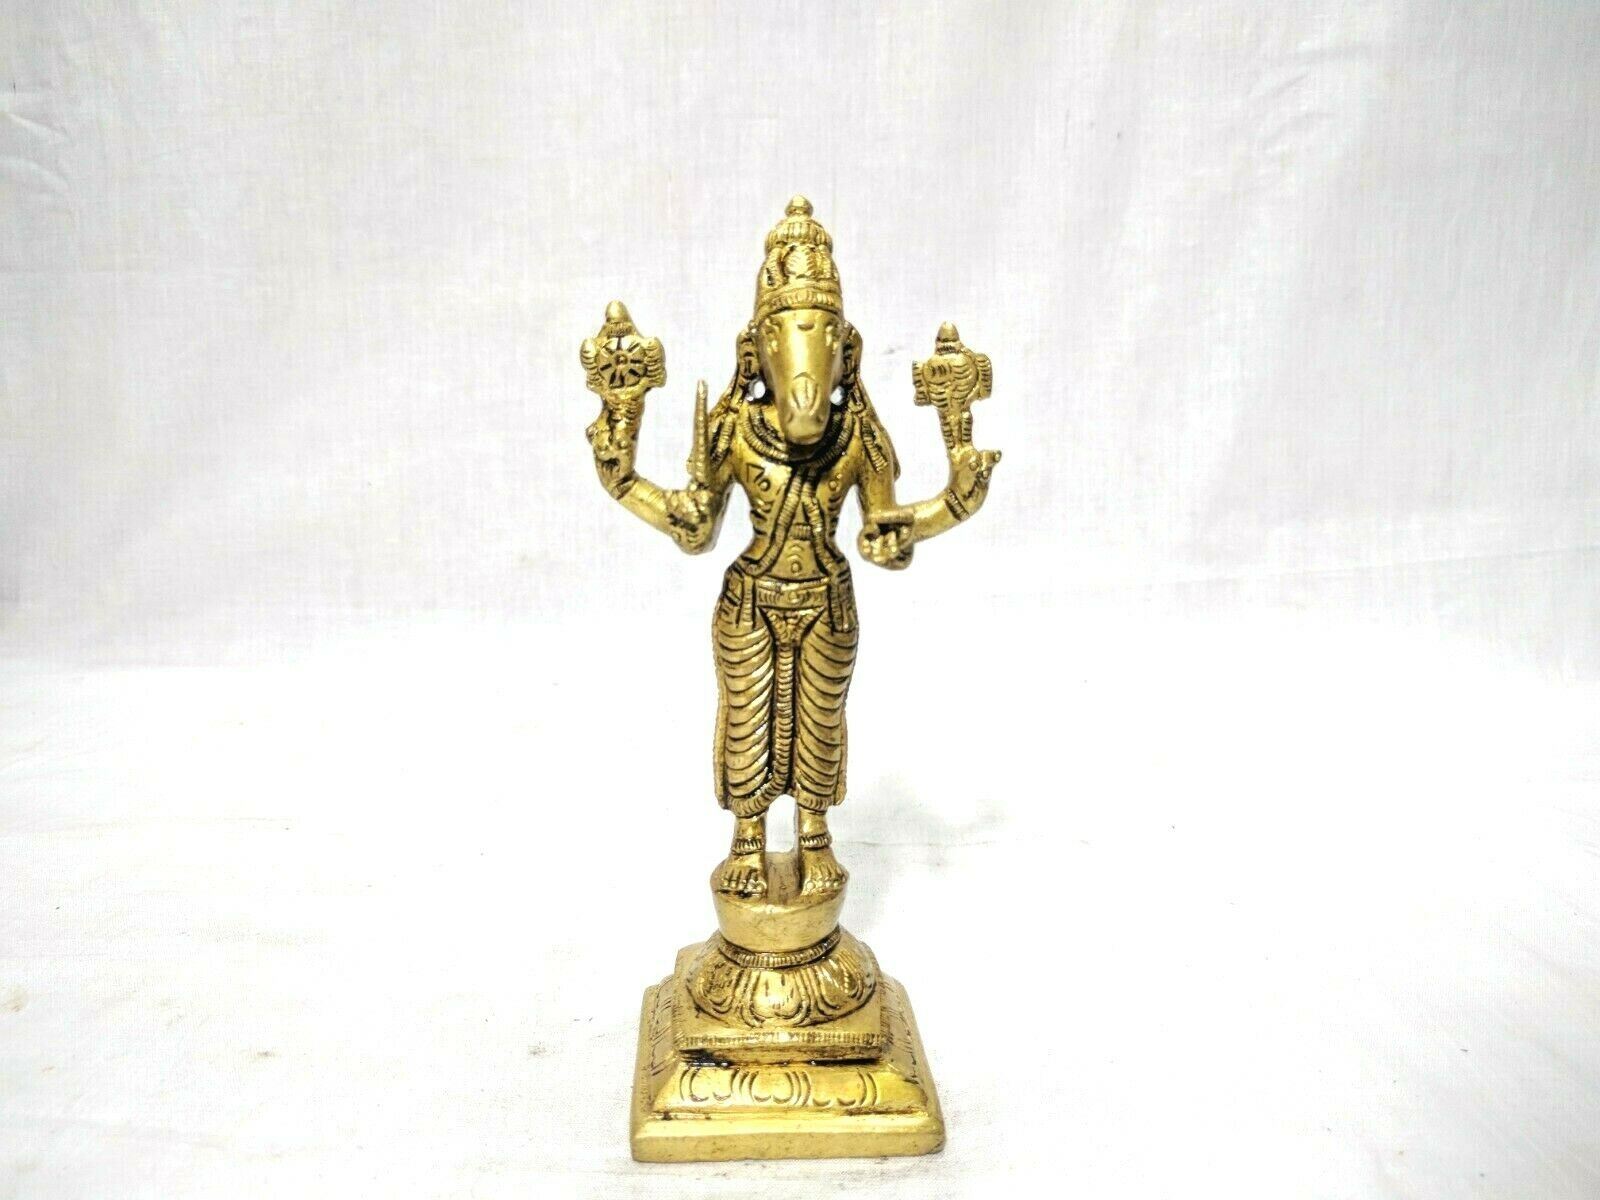 Dashavatar Brass Statue Vishnu Ten Avatar God Pooja Figurine Temple Art Decor Без бренда - фотография #11